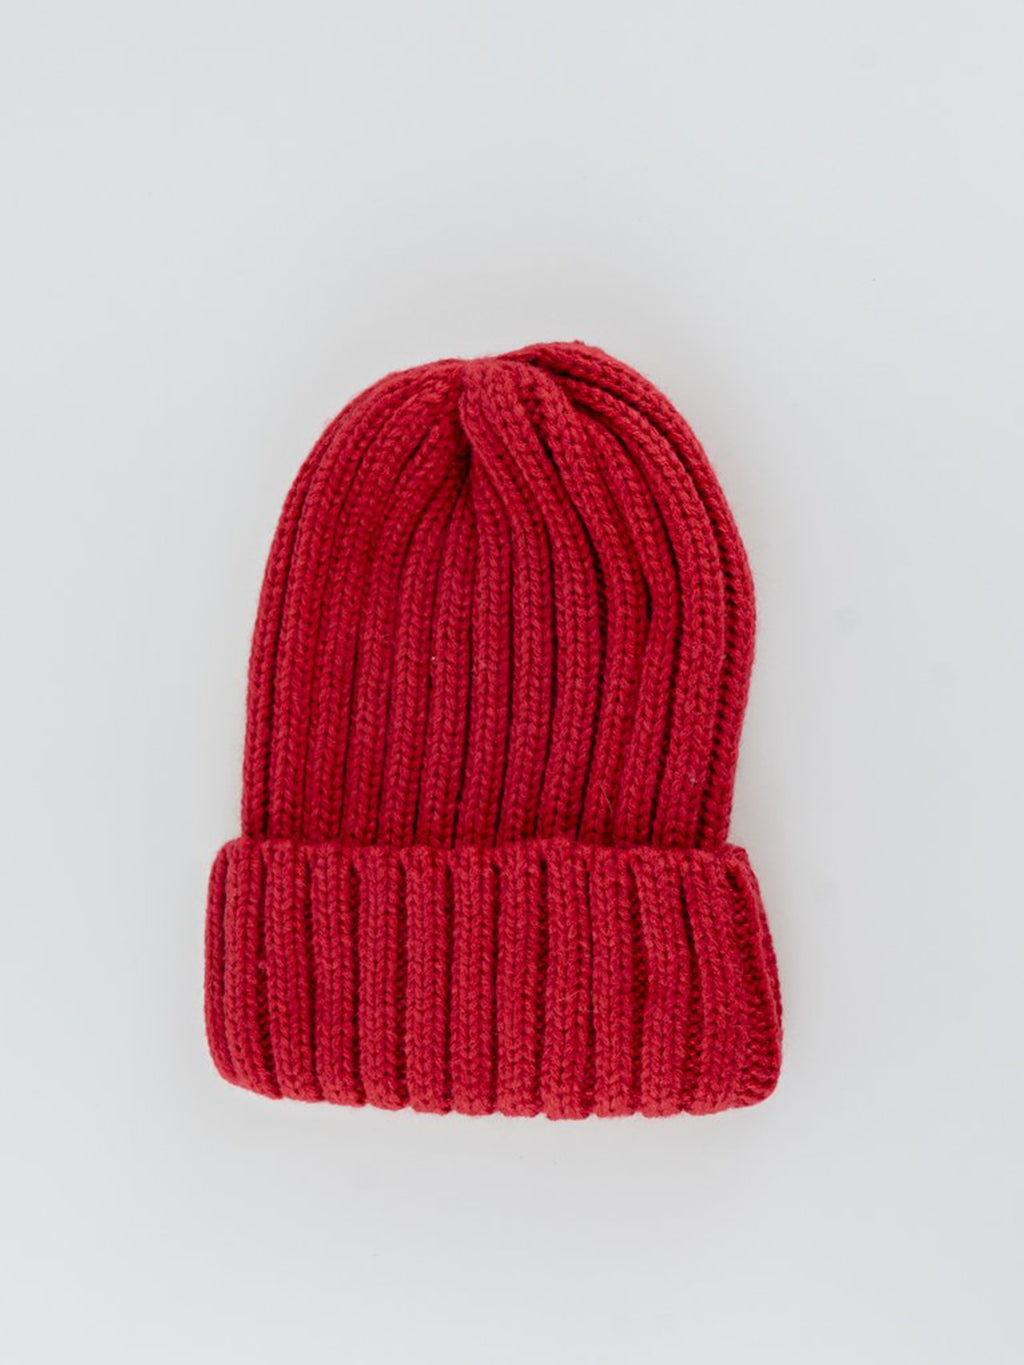 RIBBED RED BEANIE HAT - svnx